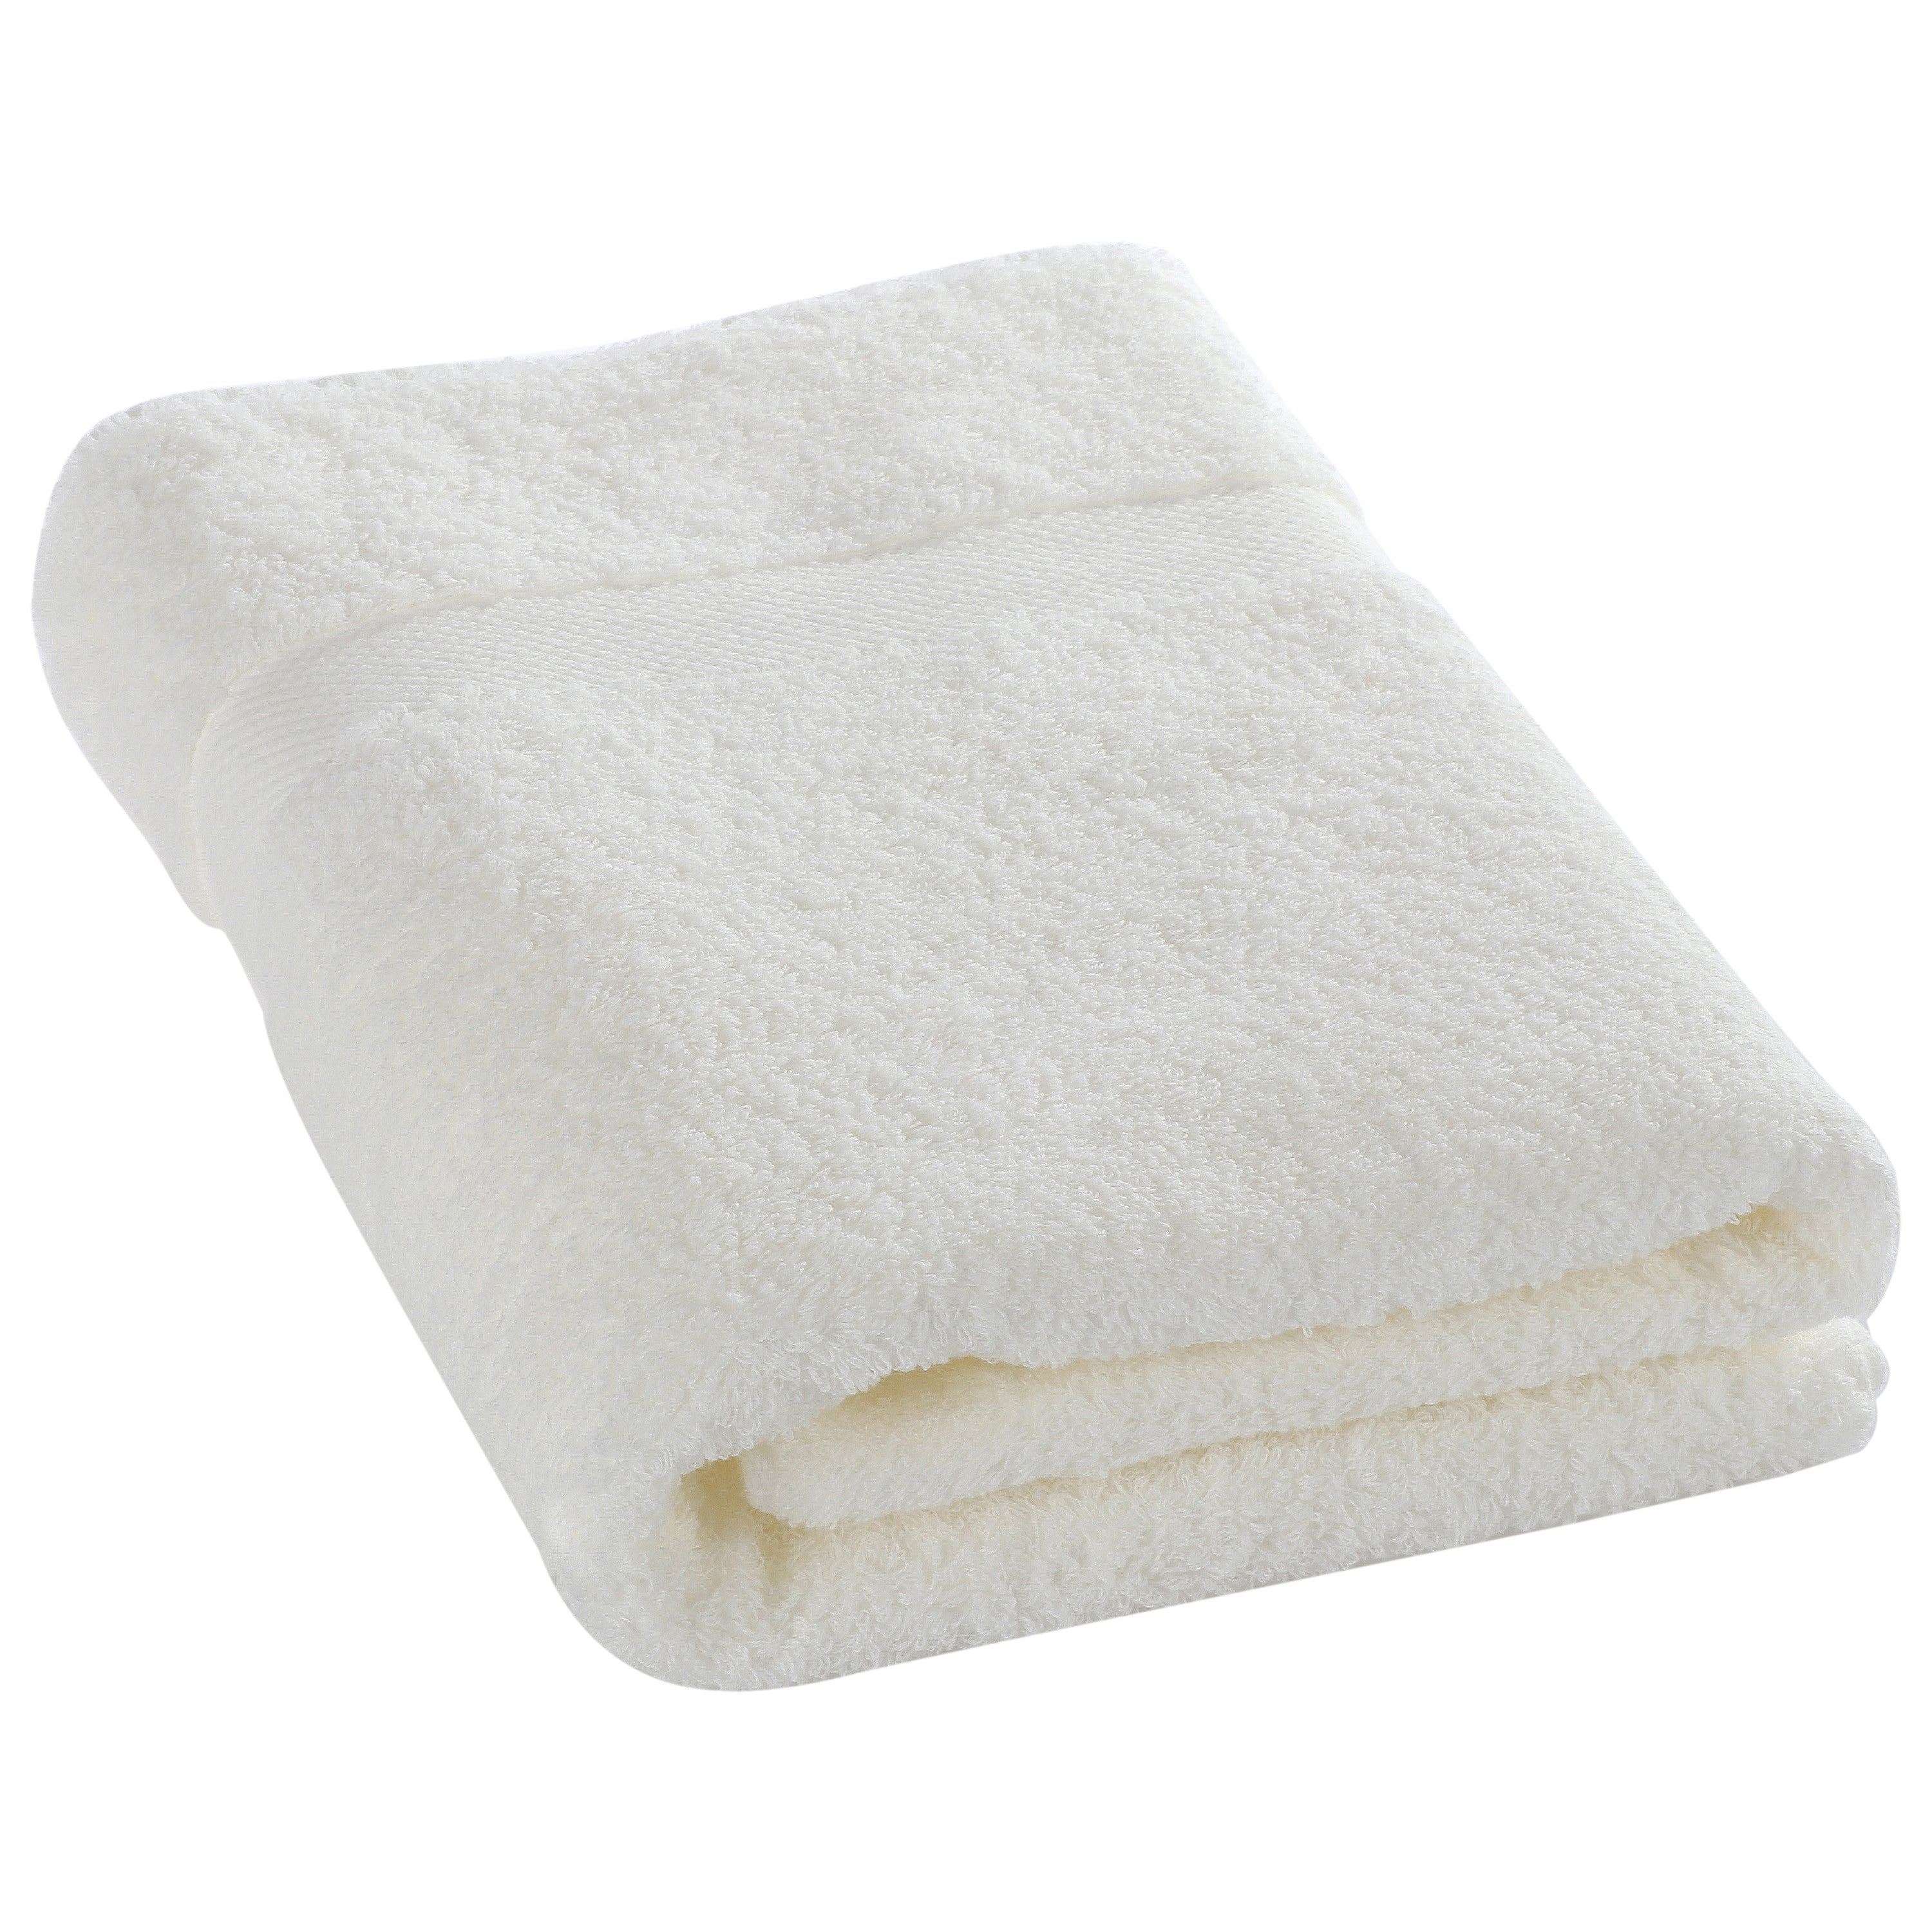 Superior 100% Organic Cotton Towel Best For Sensitive Skin ...